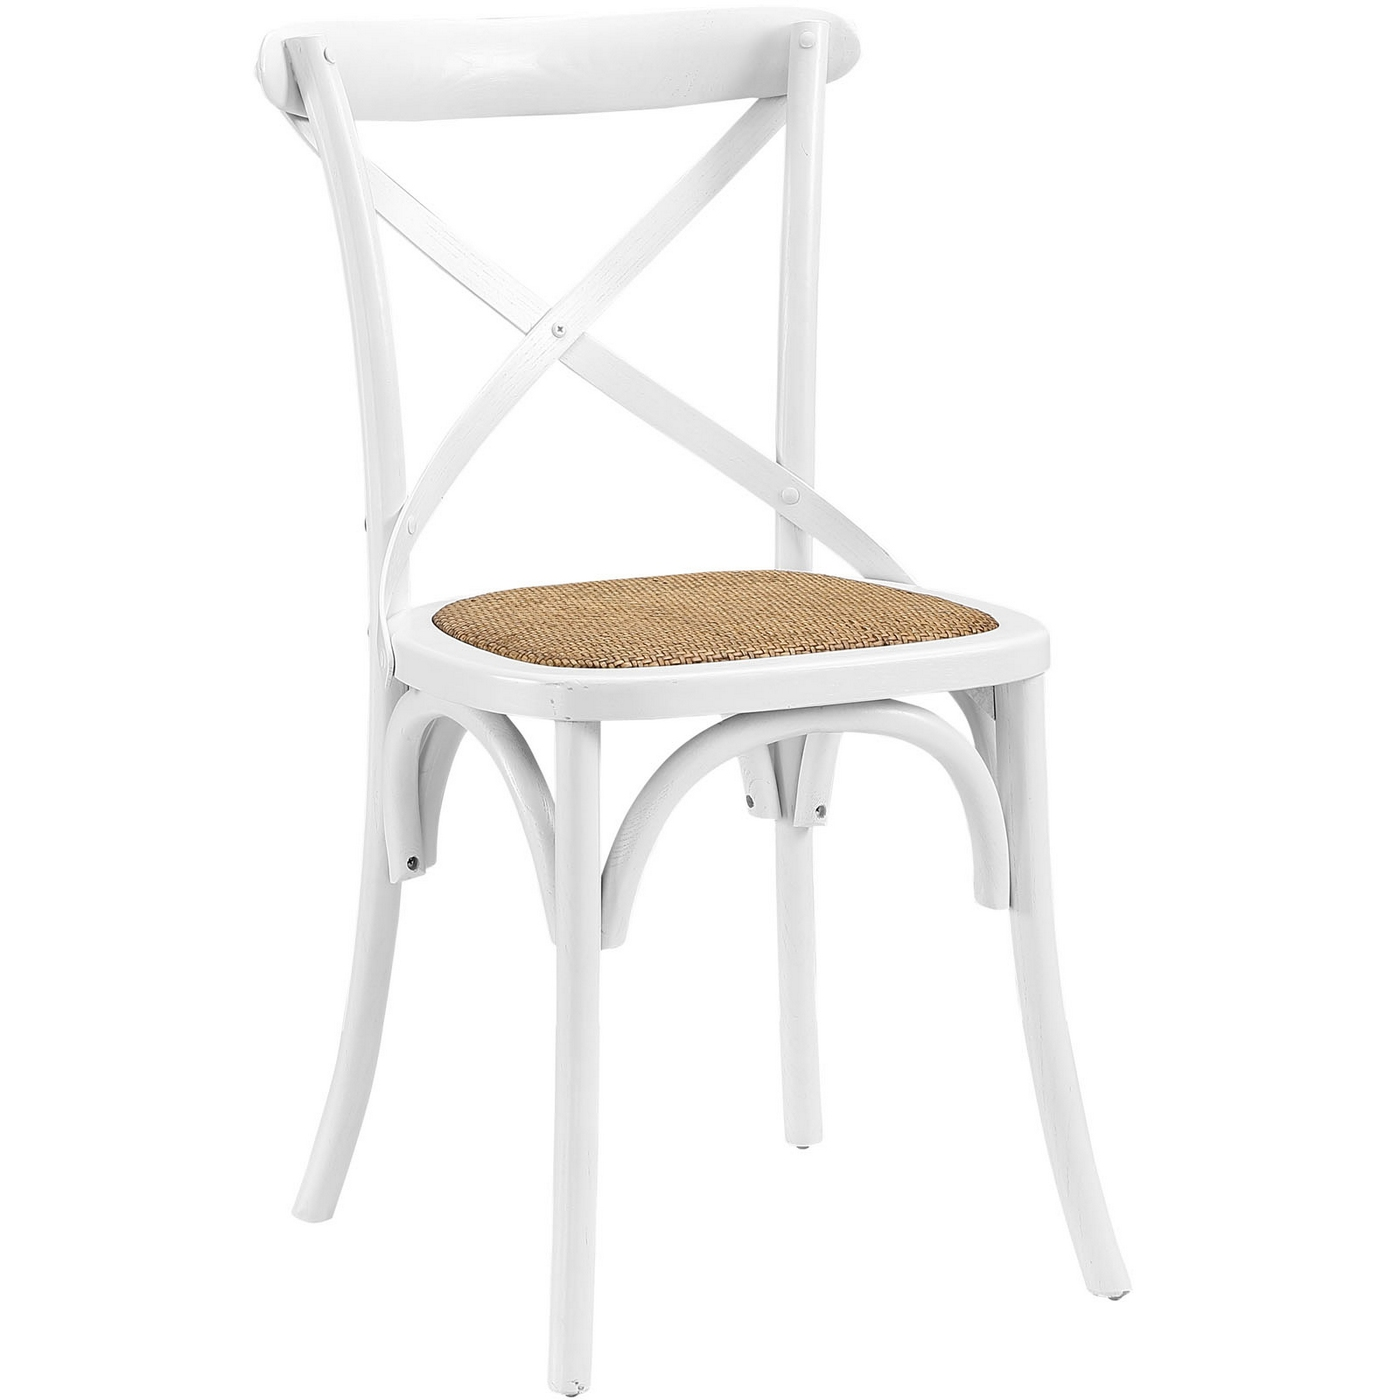 white x back chair black banquet covers for sale gear modern country wooden quotx quot side w rattan